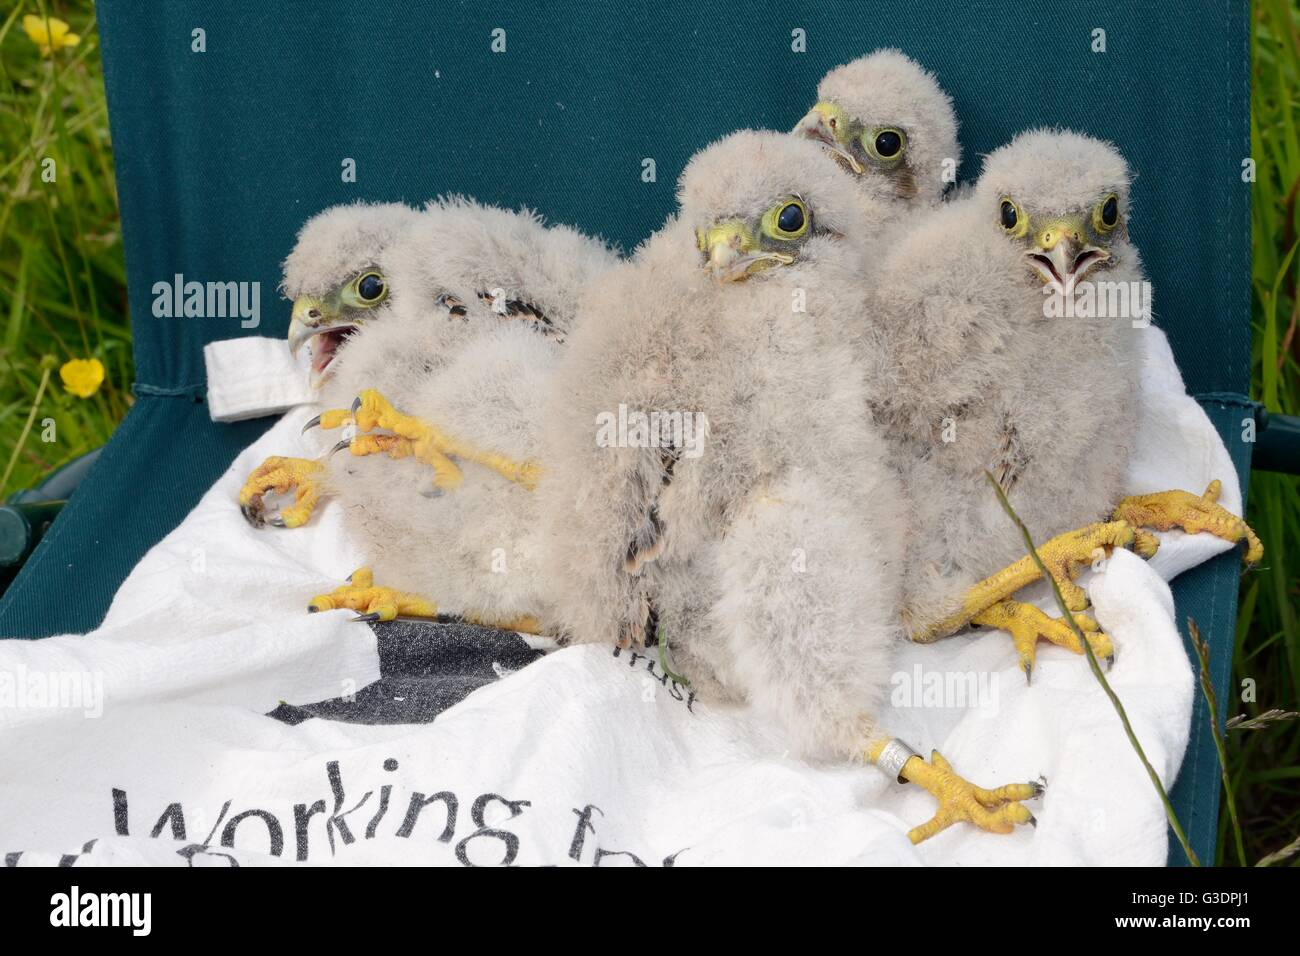 Four Kestrel chicks (Falco tinnunculus) taken from a nestbox and ringed during a survey for the Hawk and Owl Trust. - Stock Image